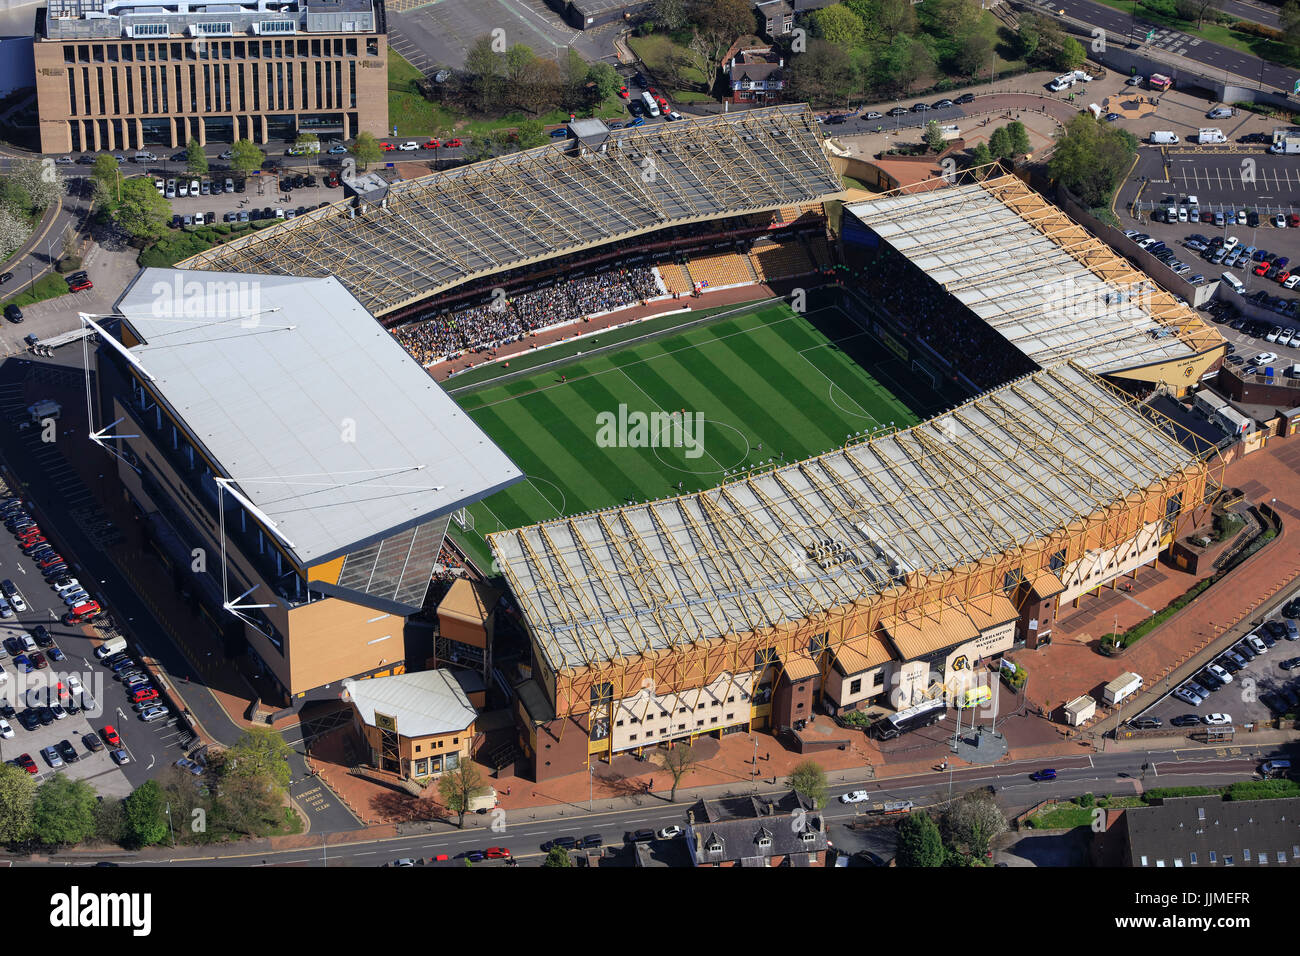 an-aerial-view-of-molineux-stadium-home-